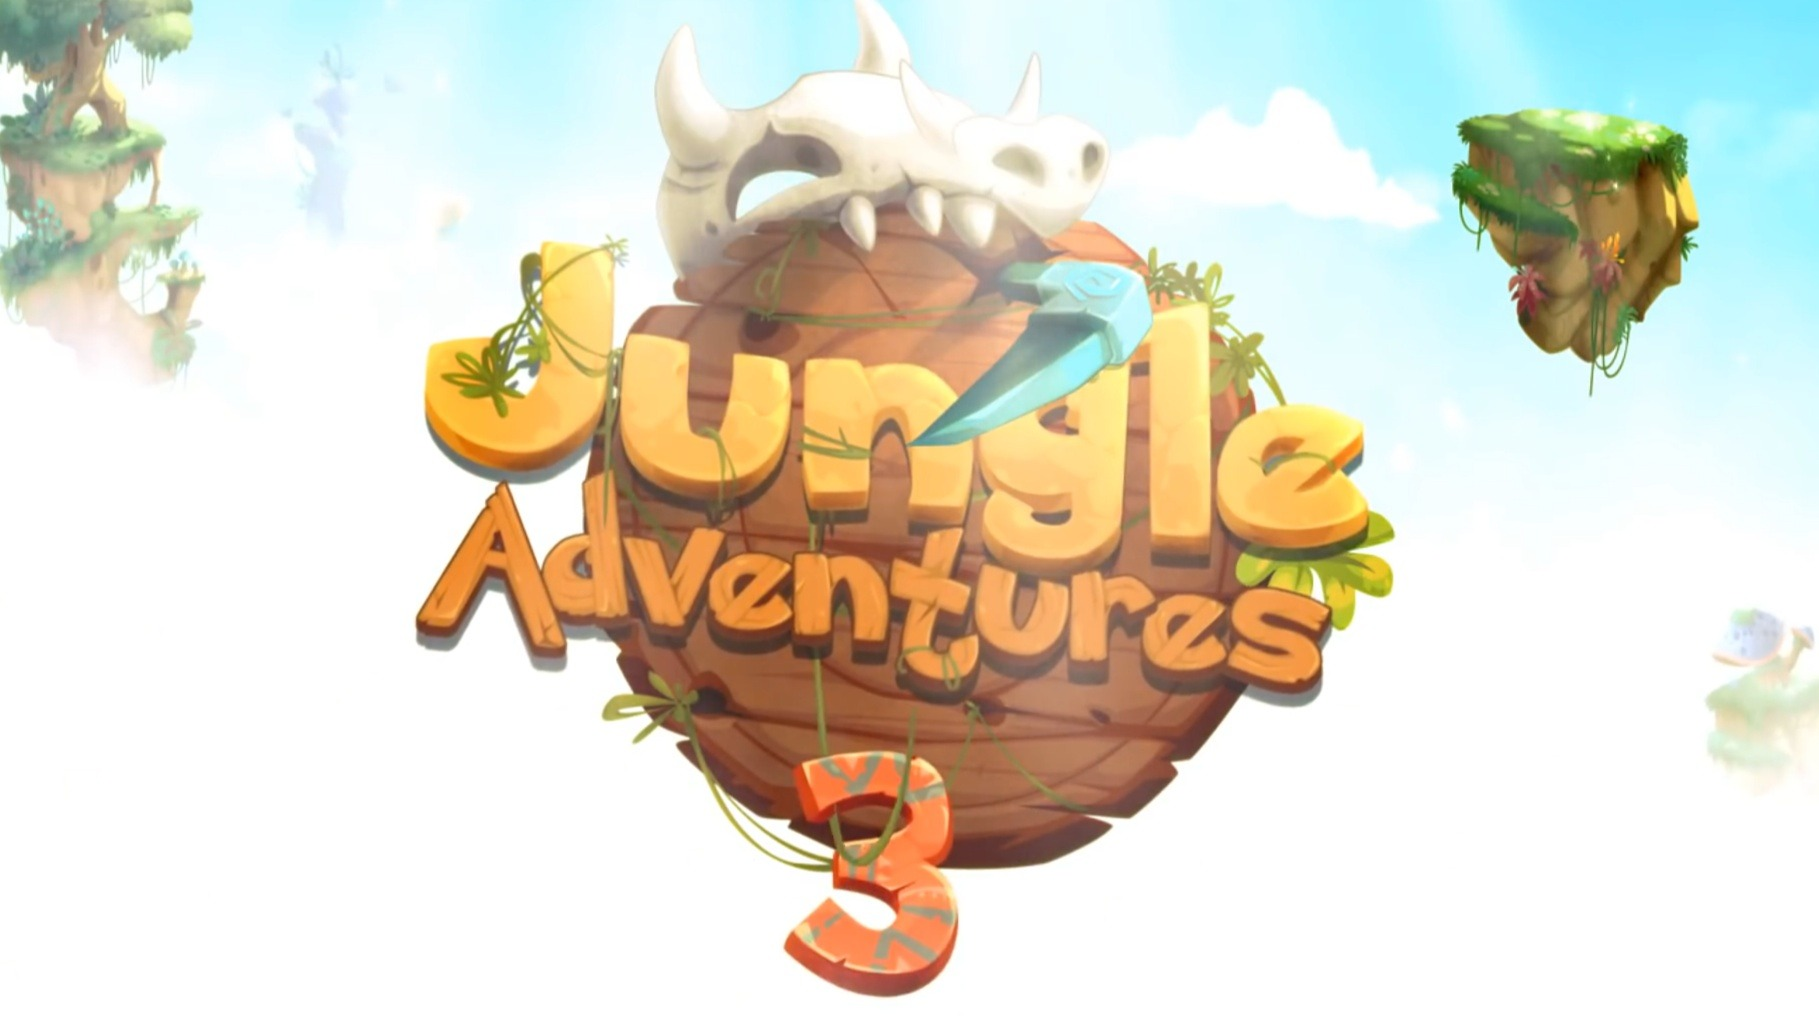 jungle adventures 3 mod apk hack unlimited money